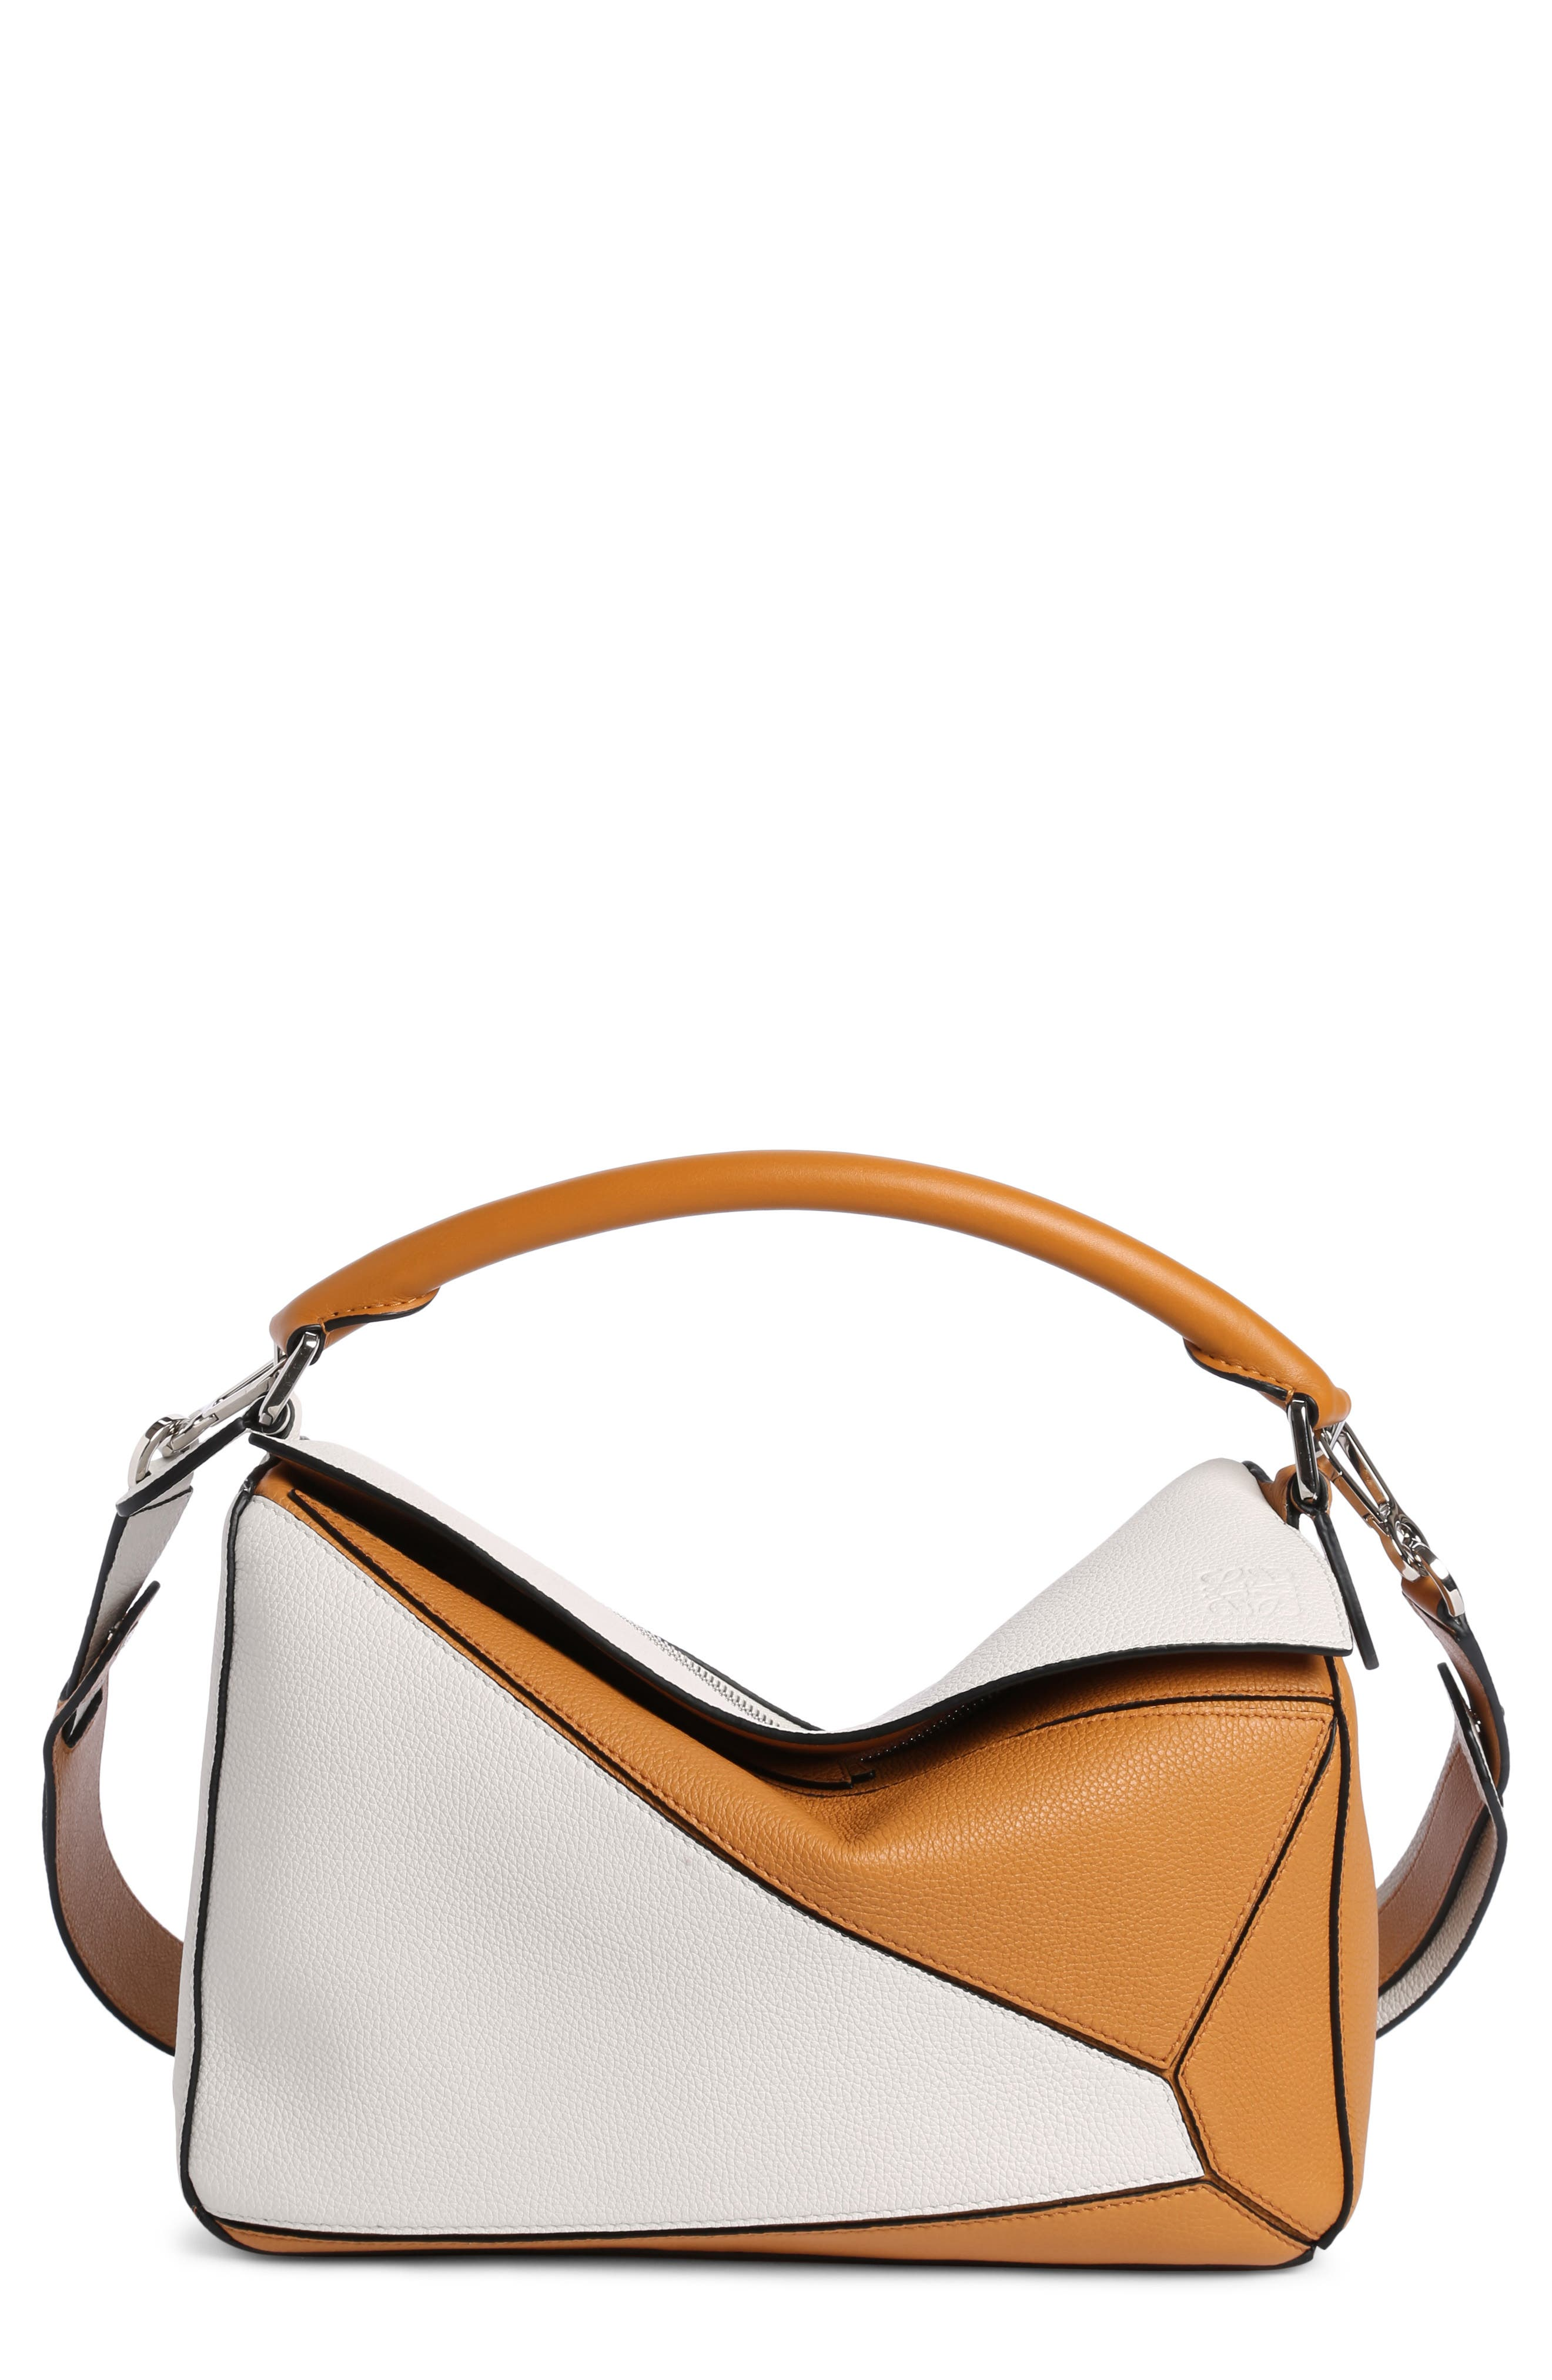 Puzzle Colorblock Calfskin Leather Bag,                         Main,                         color, 141